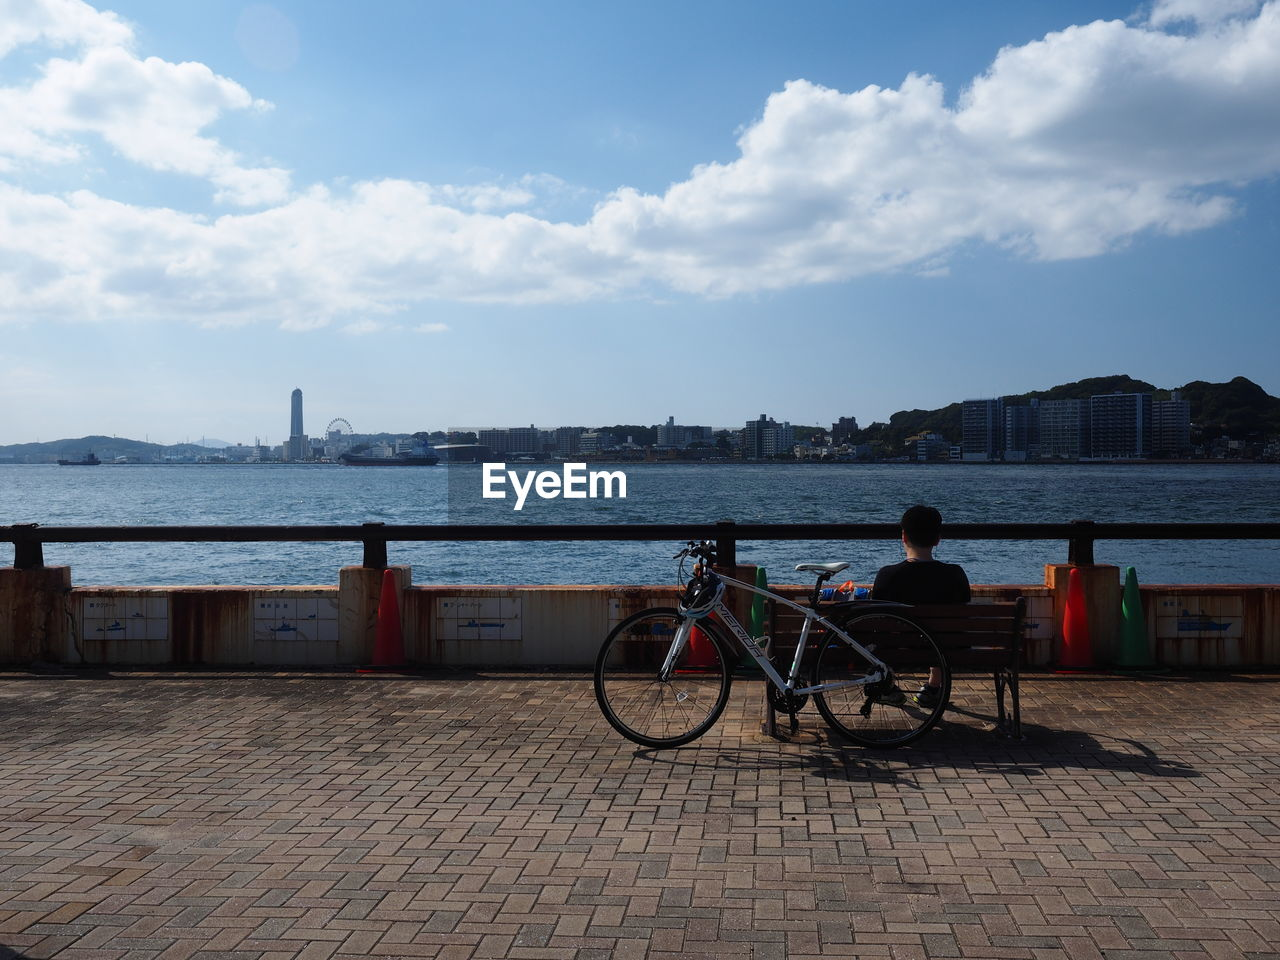 sky, bicycle, cloud - sky, architecture, transportation, water, mode of transportation, city, built structure, building exterior, nature, real people, land vehicle, people, nautical vessel, lifestyles, day, sea, outdoors